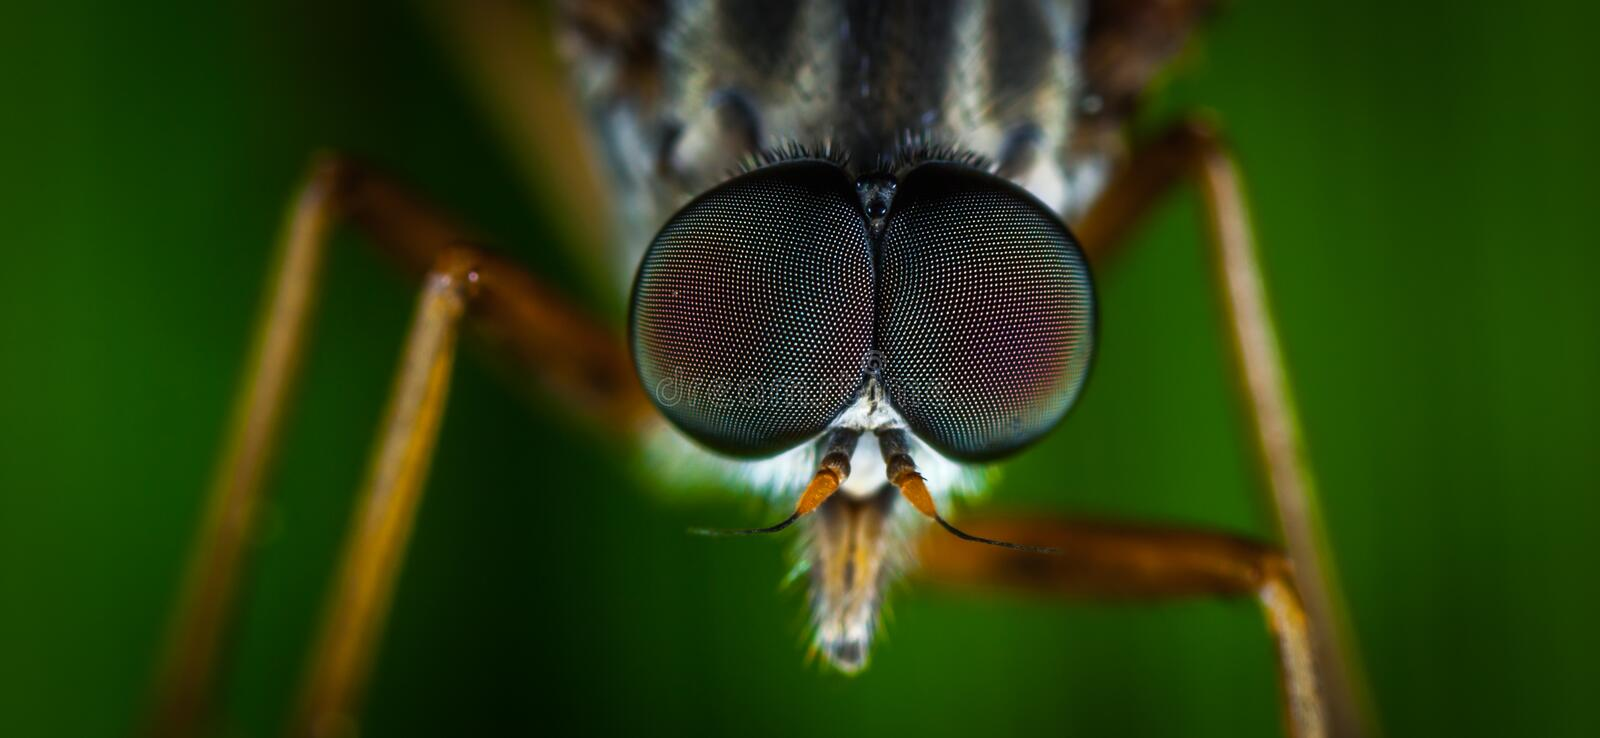 Macro Photography of Brown Fly royalty free stock photos